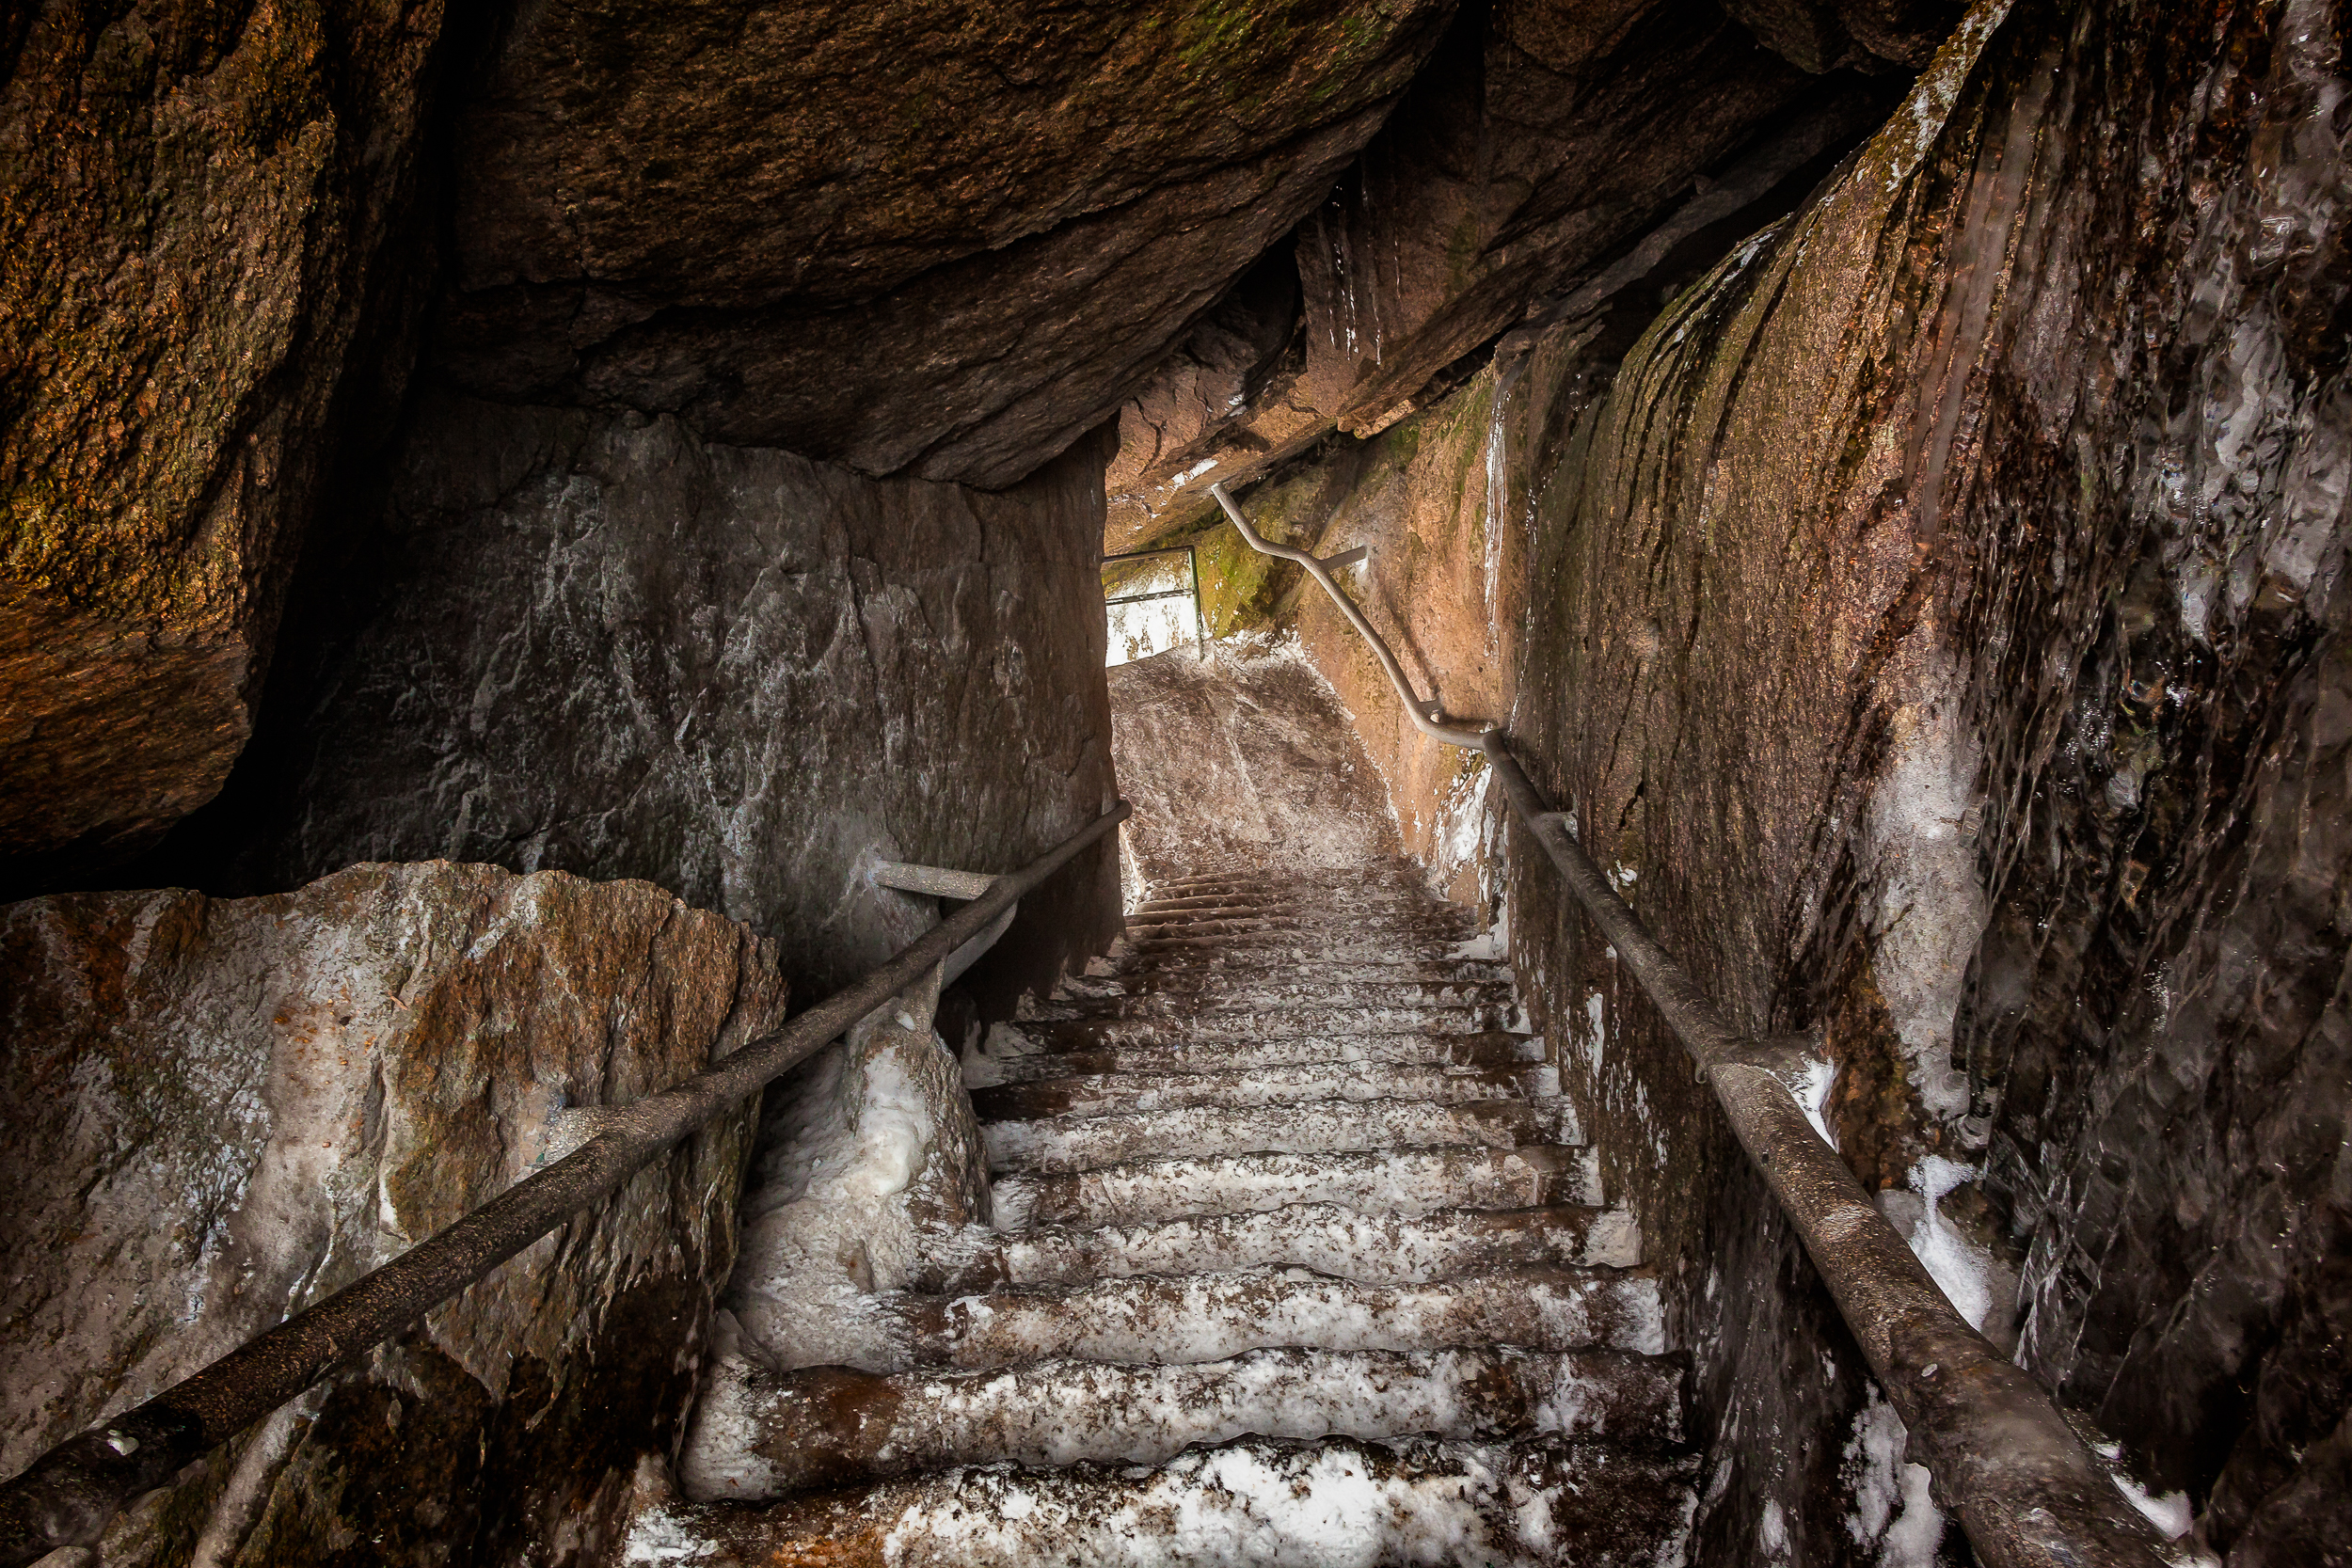 An  icy staircase  takes the hiker  through the rock  and onto the path proper along the spectacular trail on  Huangshan  (i.e., Yellow Mountain).